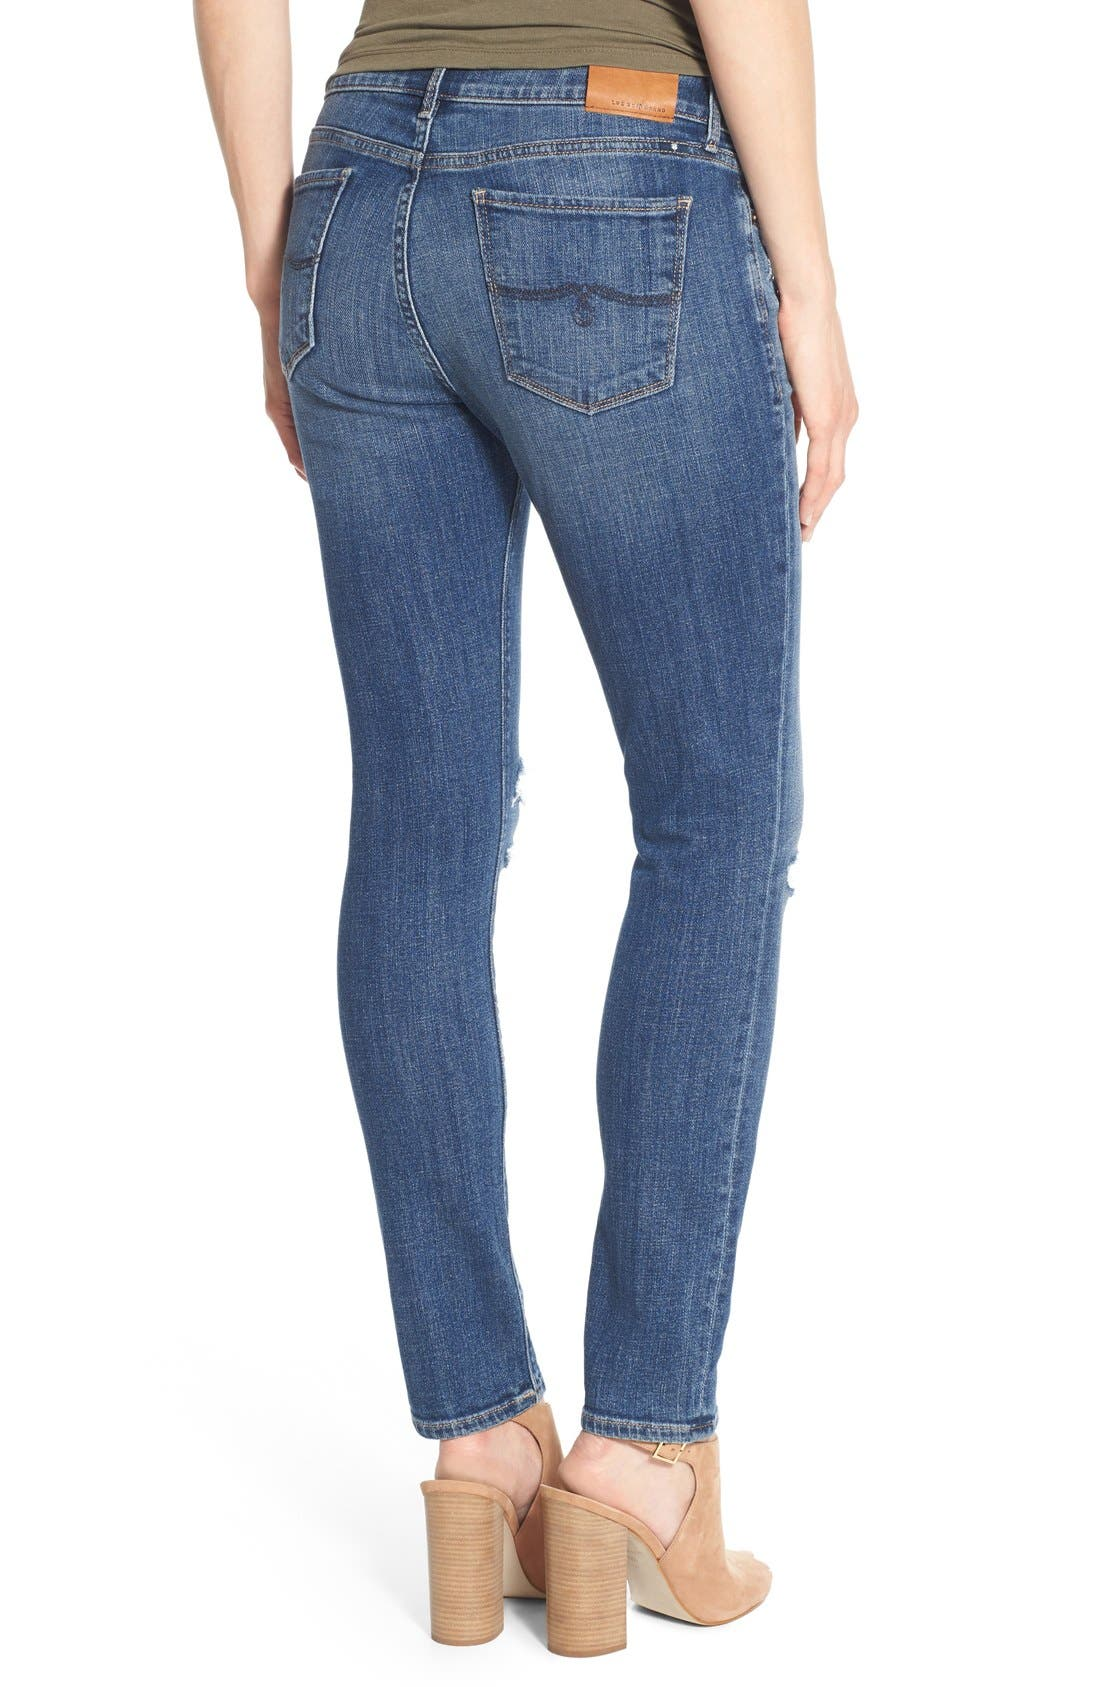 Alternate Image 3  - Lucky Brand 'Lolita' Distressed Stretch Skinny Jeans (Morrison)